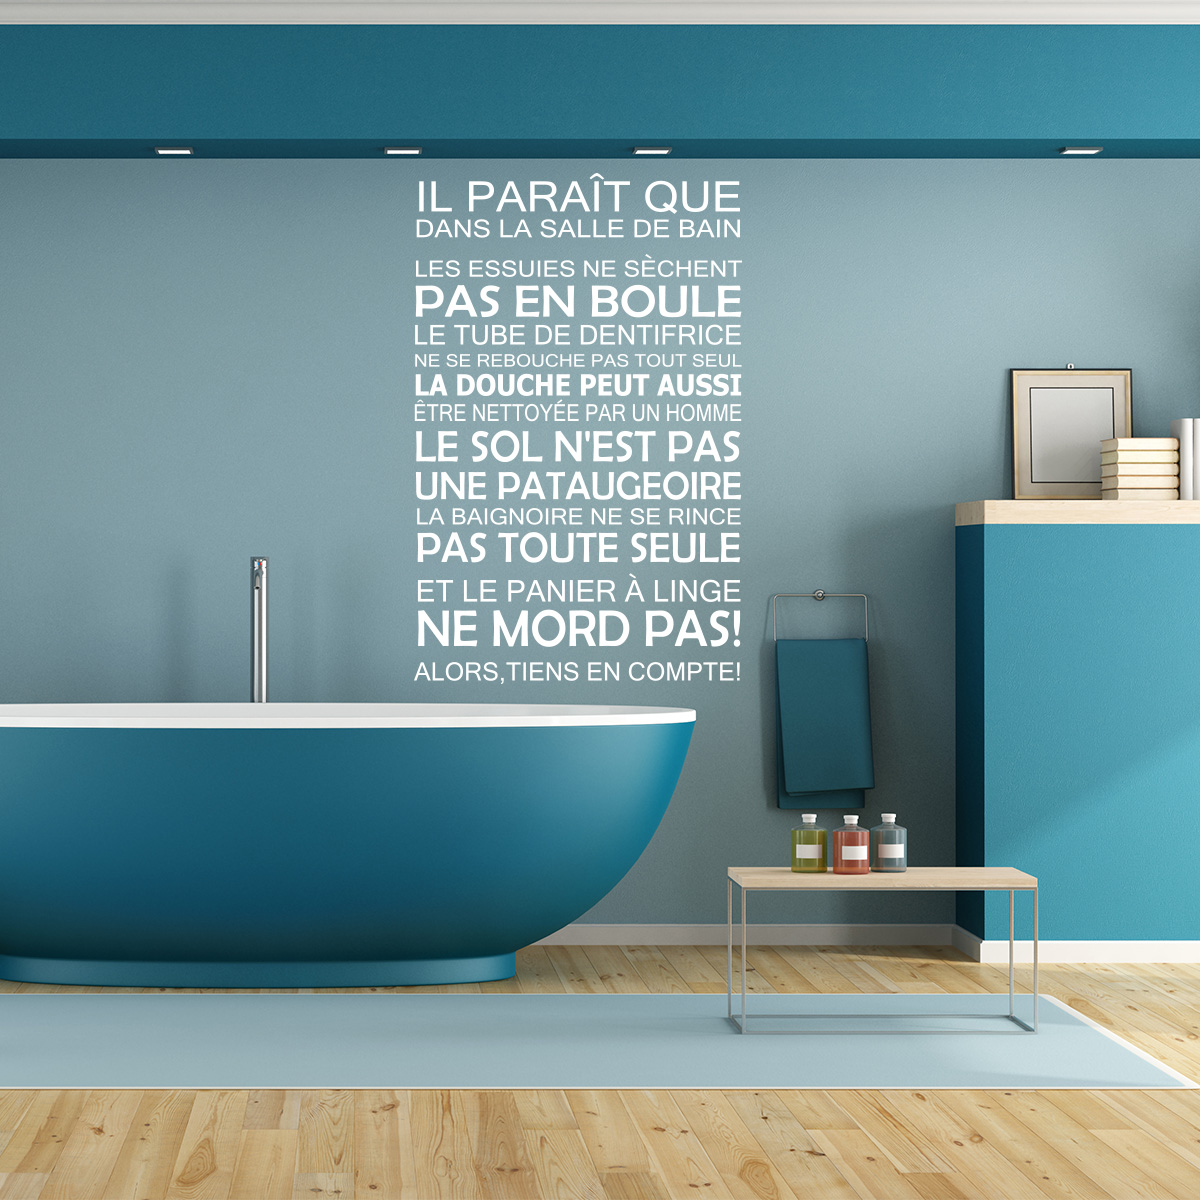 sticker il para t que dans la salle de bain stickers citations fran ais ambiance sticker